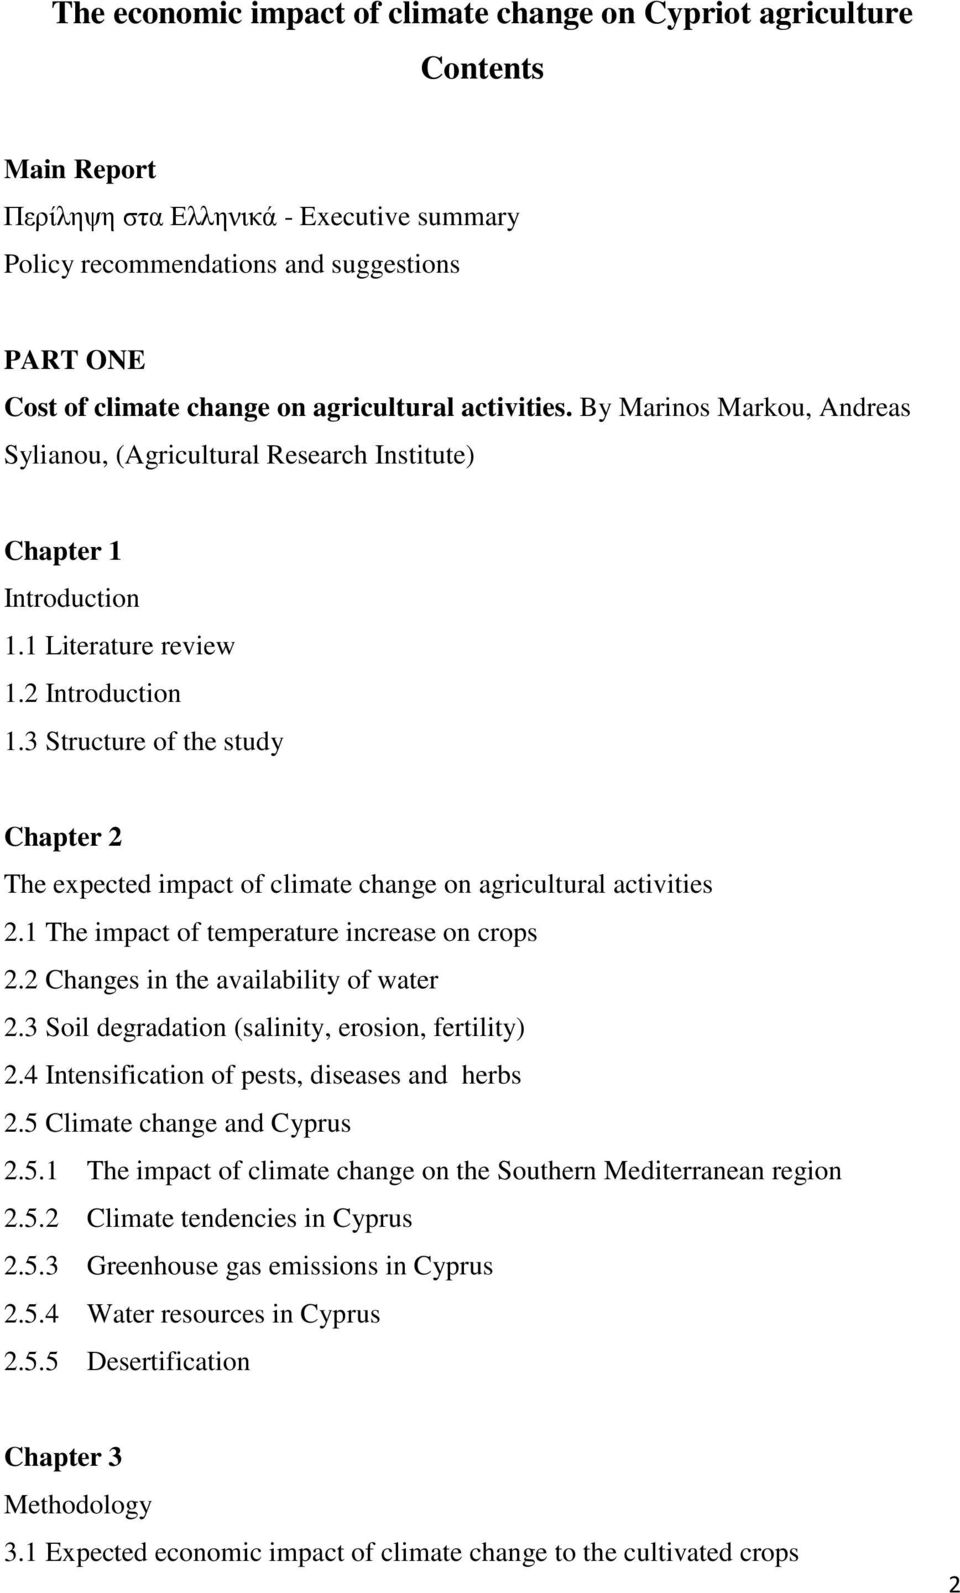 3 Structure of the study Chapter 2 The expected impact of climate change on agricultural activities 2.1 The impact of temperature increase on crops 2.2 Changes in the availability of water 2.